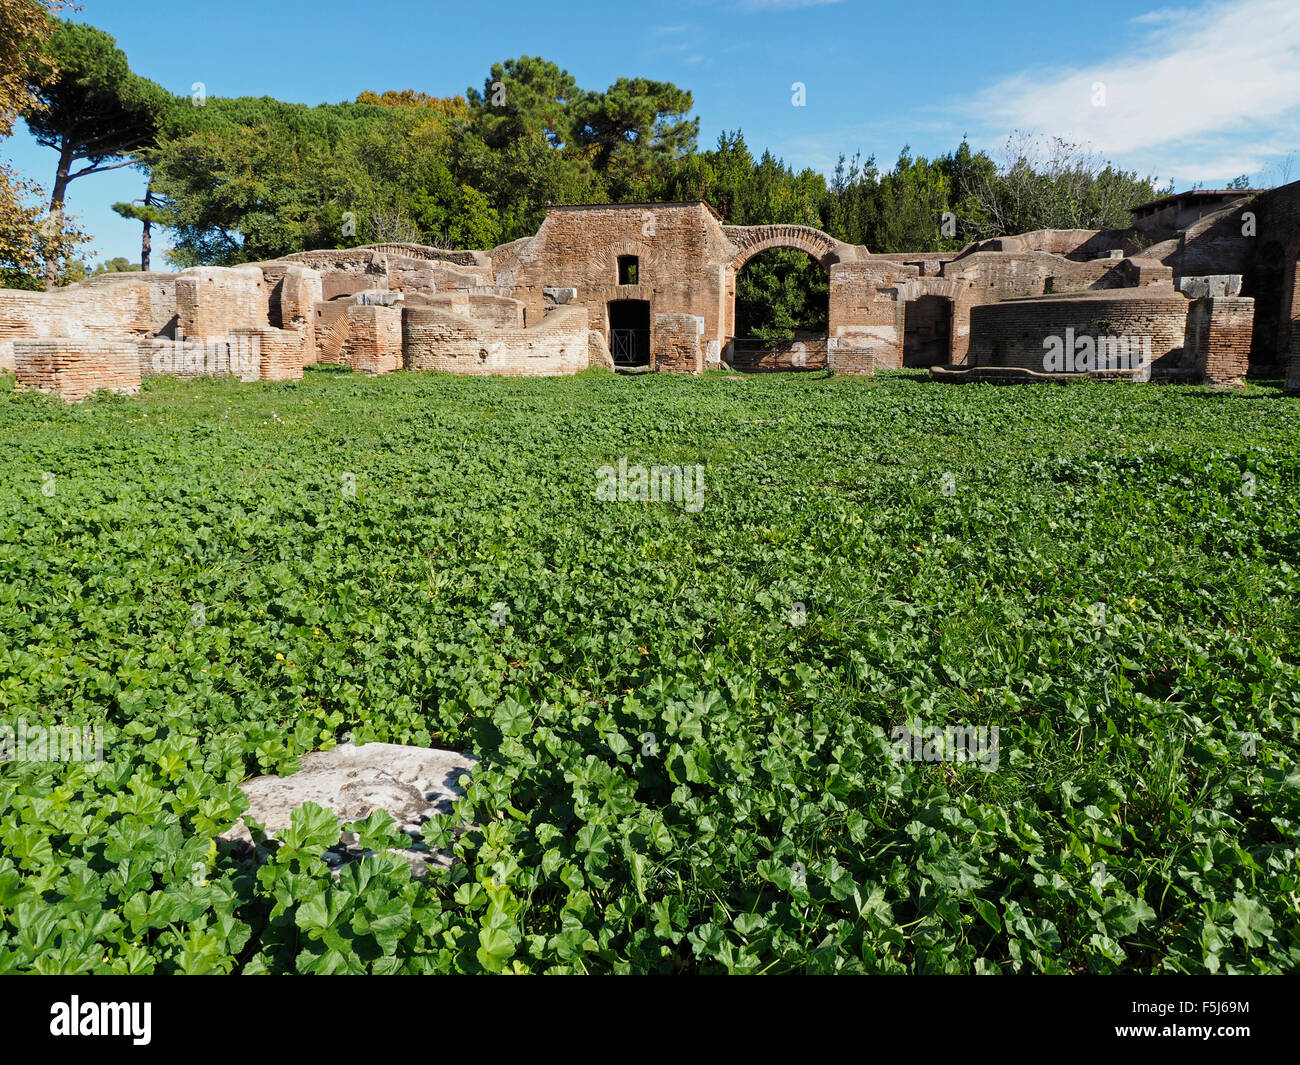 Ostia Antica, Roman warehouse-complex ruins This part was used for storing grain and corn. Near Rome, Italy - Stock Image